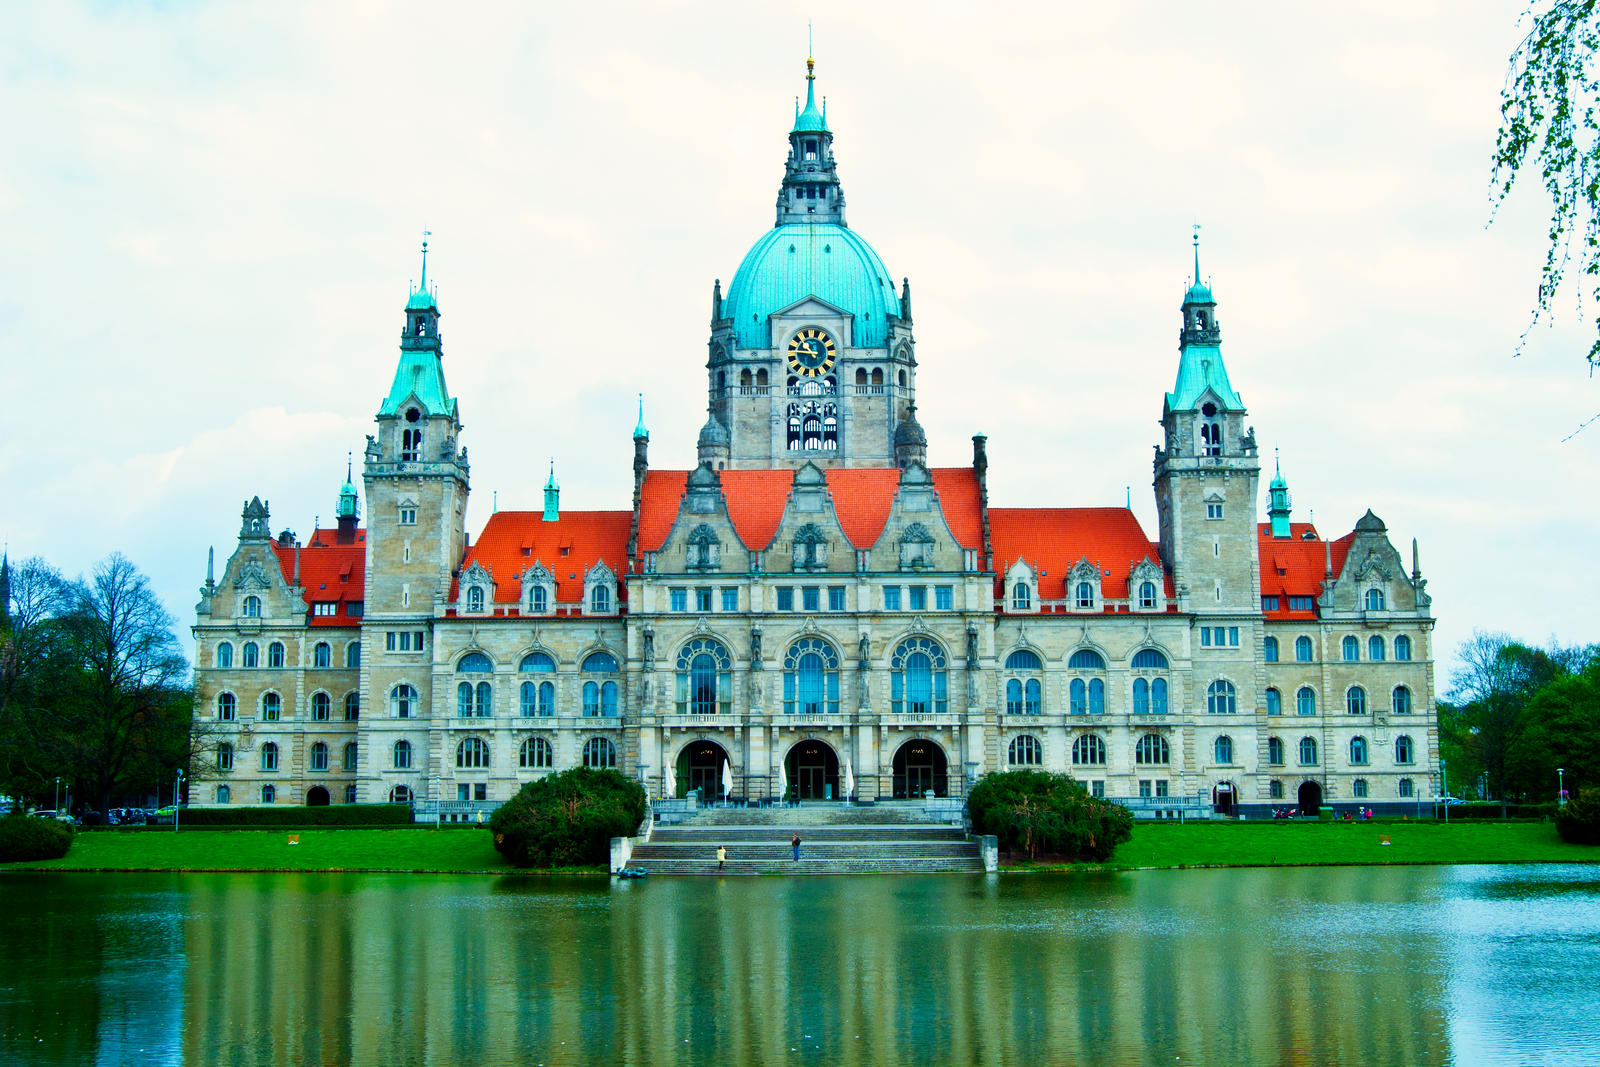 New city hall hannover by mr26photo on deviantart for Souvenir shop hannover